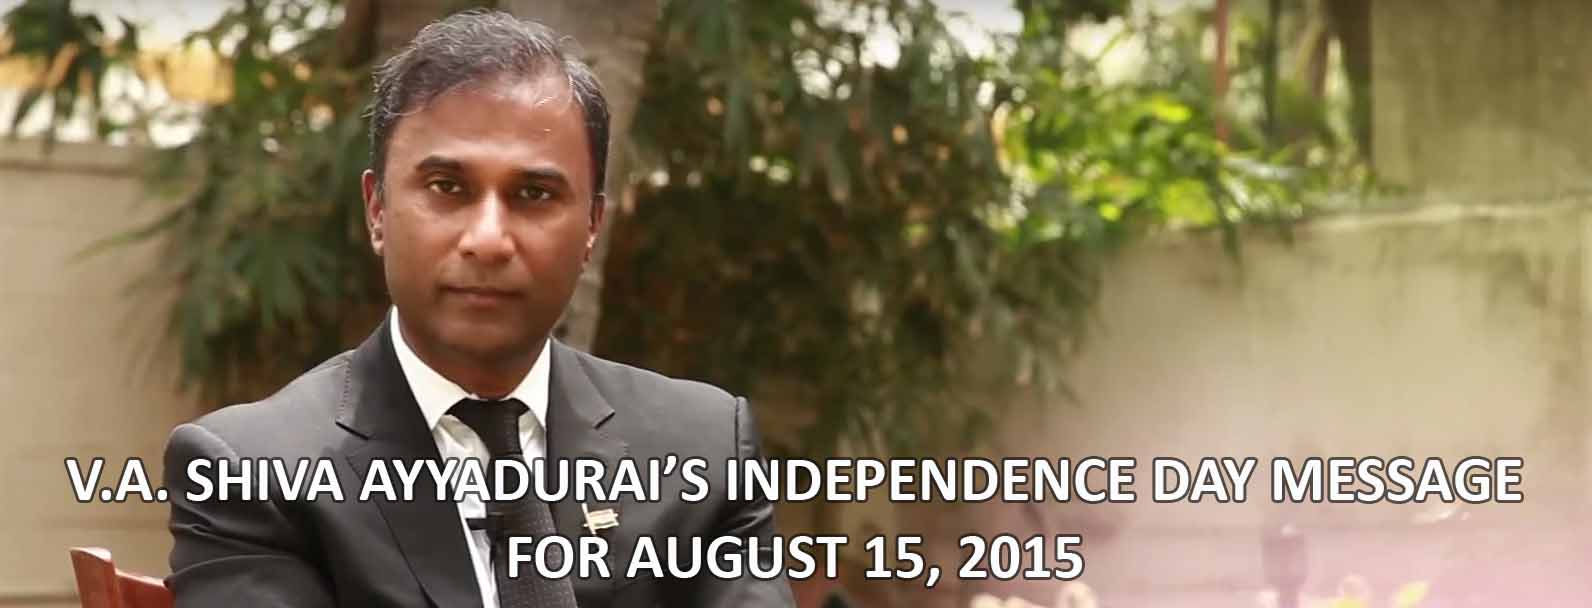 V.A. Shiva Ayyadurai's Independence Day Message For August 15, 2015